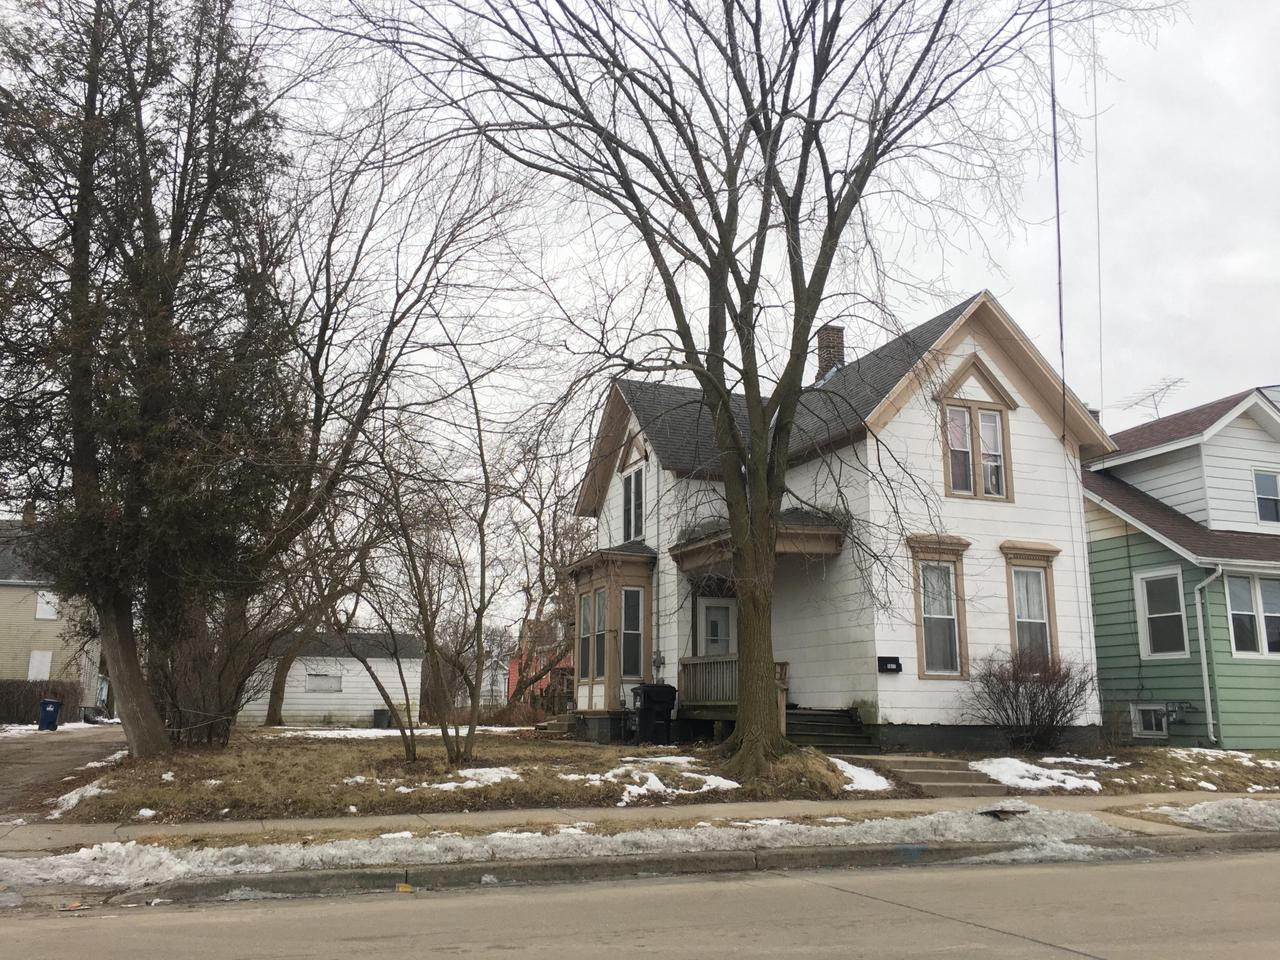 DON'T SETTLE FOR RENTING ANY LONGER! ISN'T IT TIME TO INVEST IN YOU?! THIS 5 BEDROOM HOME COULD BE A WONDERFUL HOME OR YOUR NEXT INVESTMENT.  HAS GREAT POTENTIAL.  CURRENTLY HAS A TENANT PAYING $900.00 MO.  HOME IS ON A LARGE CITY LOT.